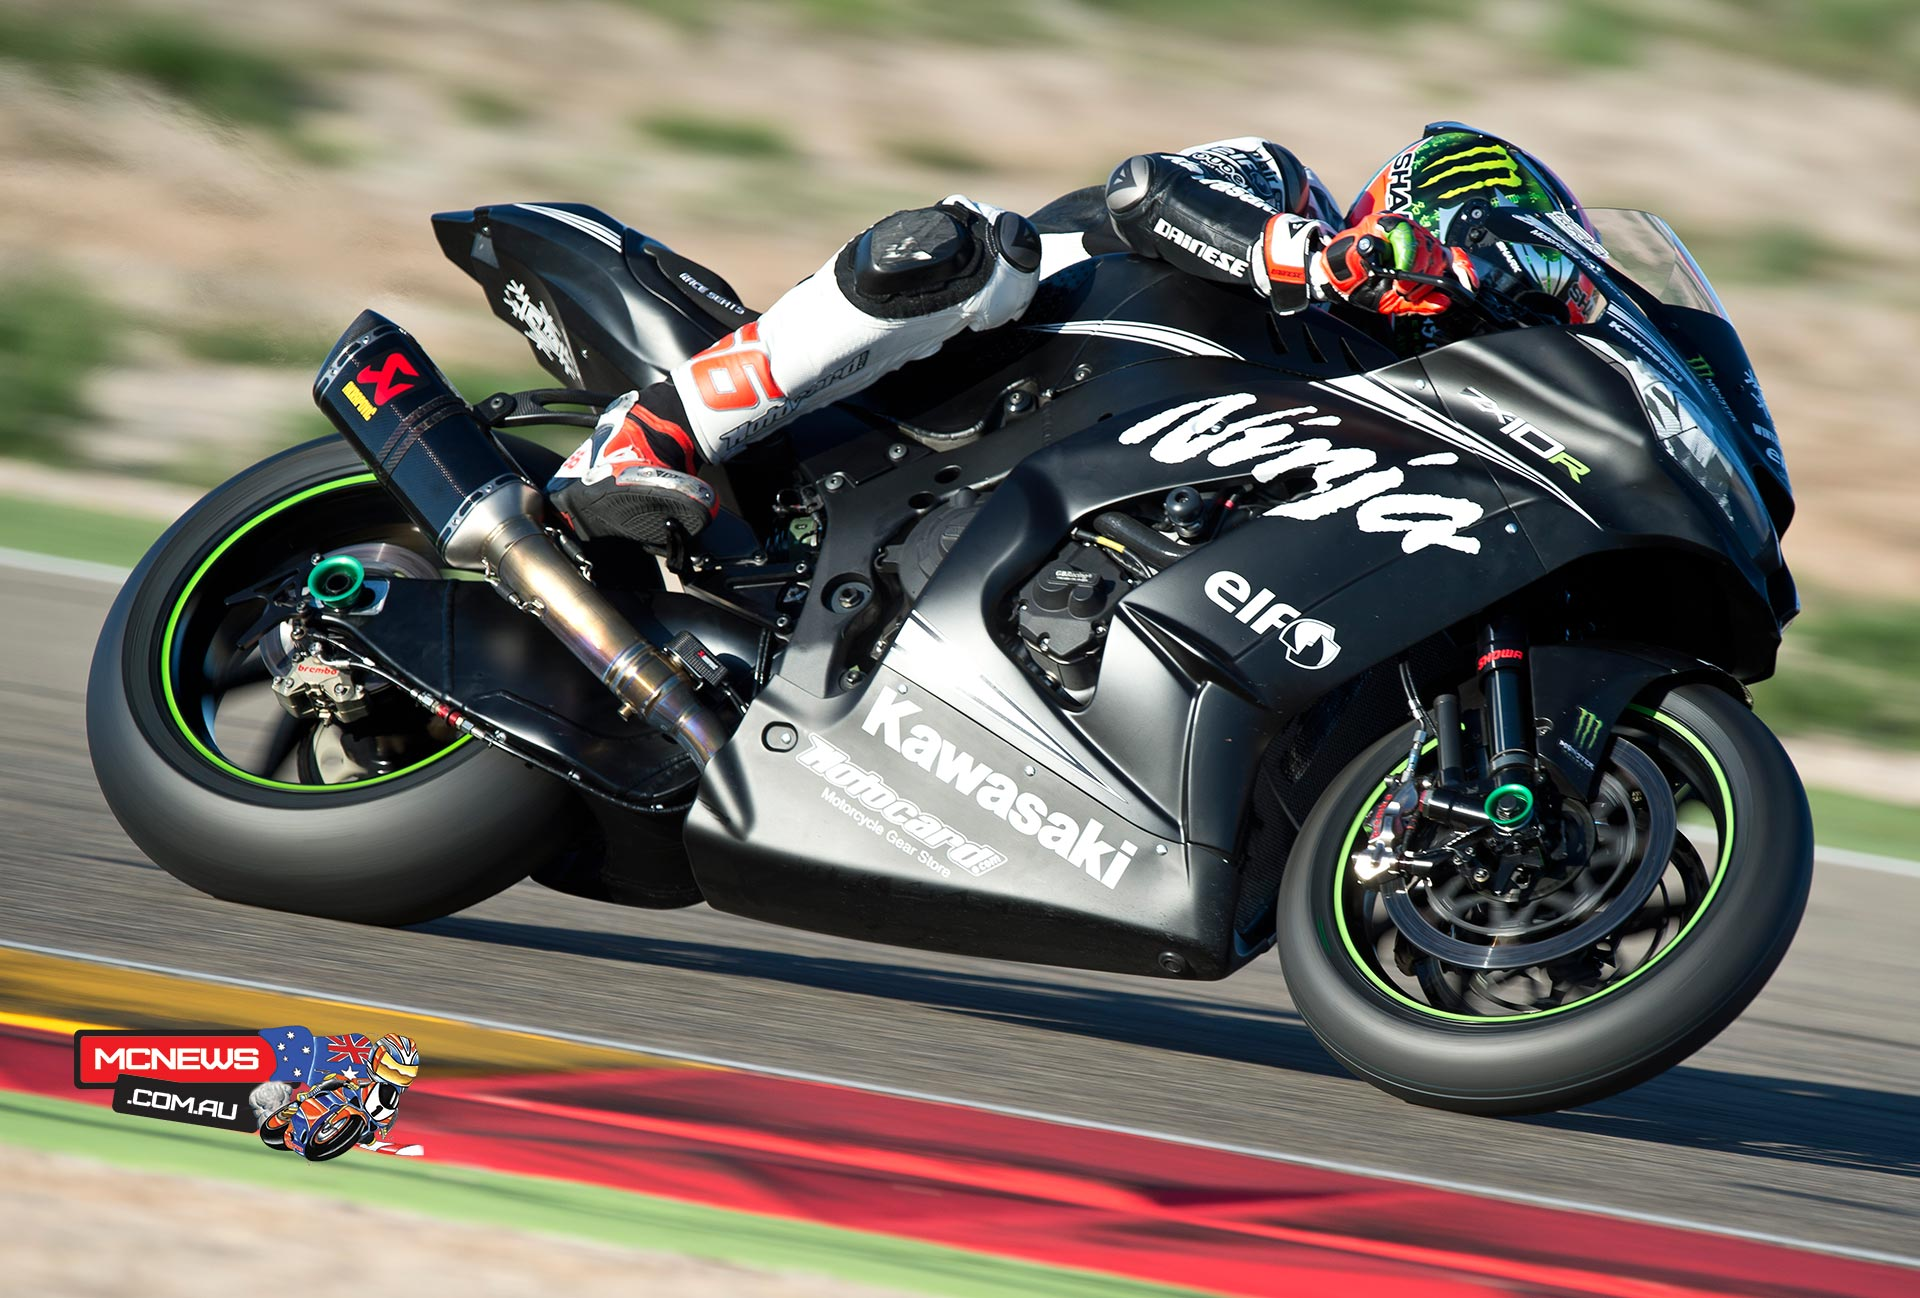 Tom Sykes - WorldSBK 2016 Testing - November, 2015 Aragon